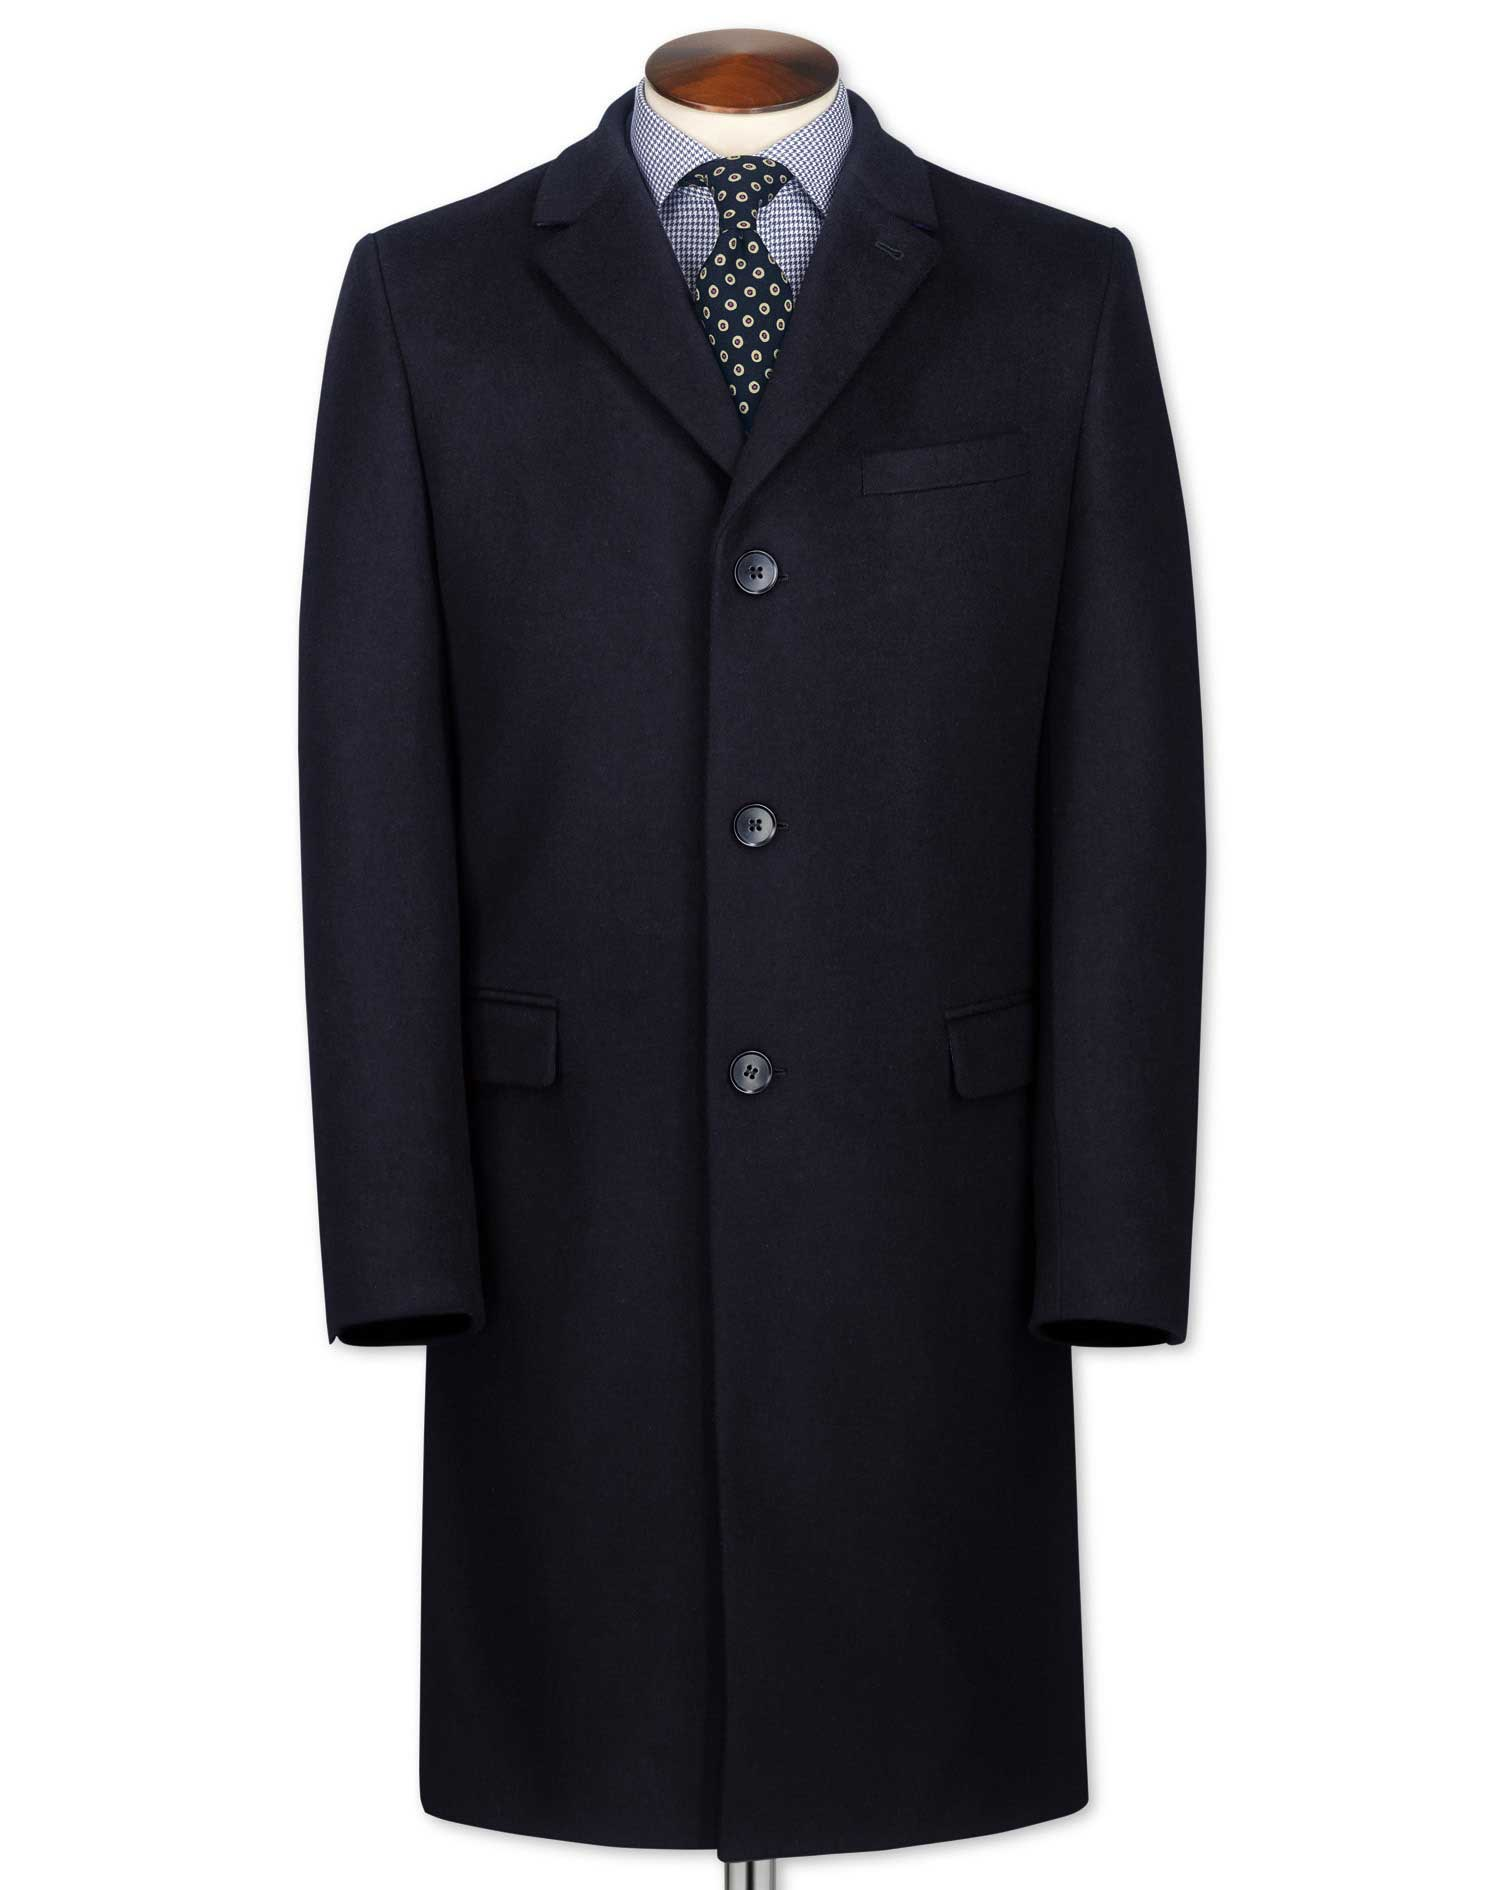 Buy stylish mens shirts, suits and shoes at Charles Tyrwhitt. Shop for accessories, ties, knitwear and casual clothing, as well as womens clothes, and get cashback rewards.